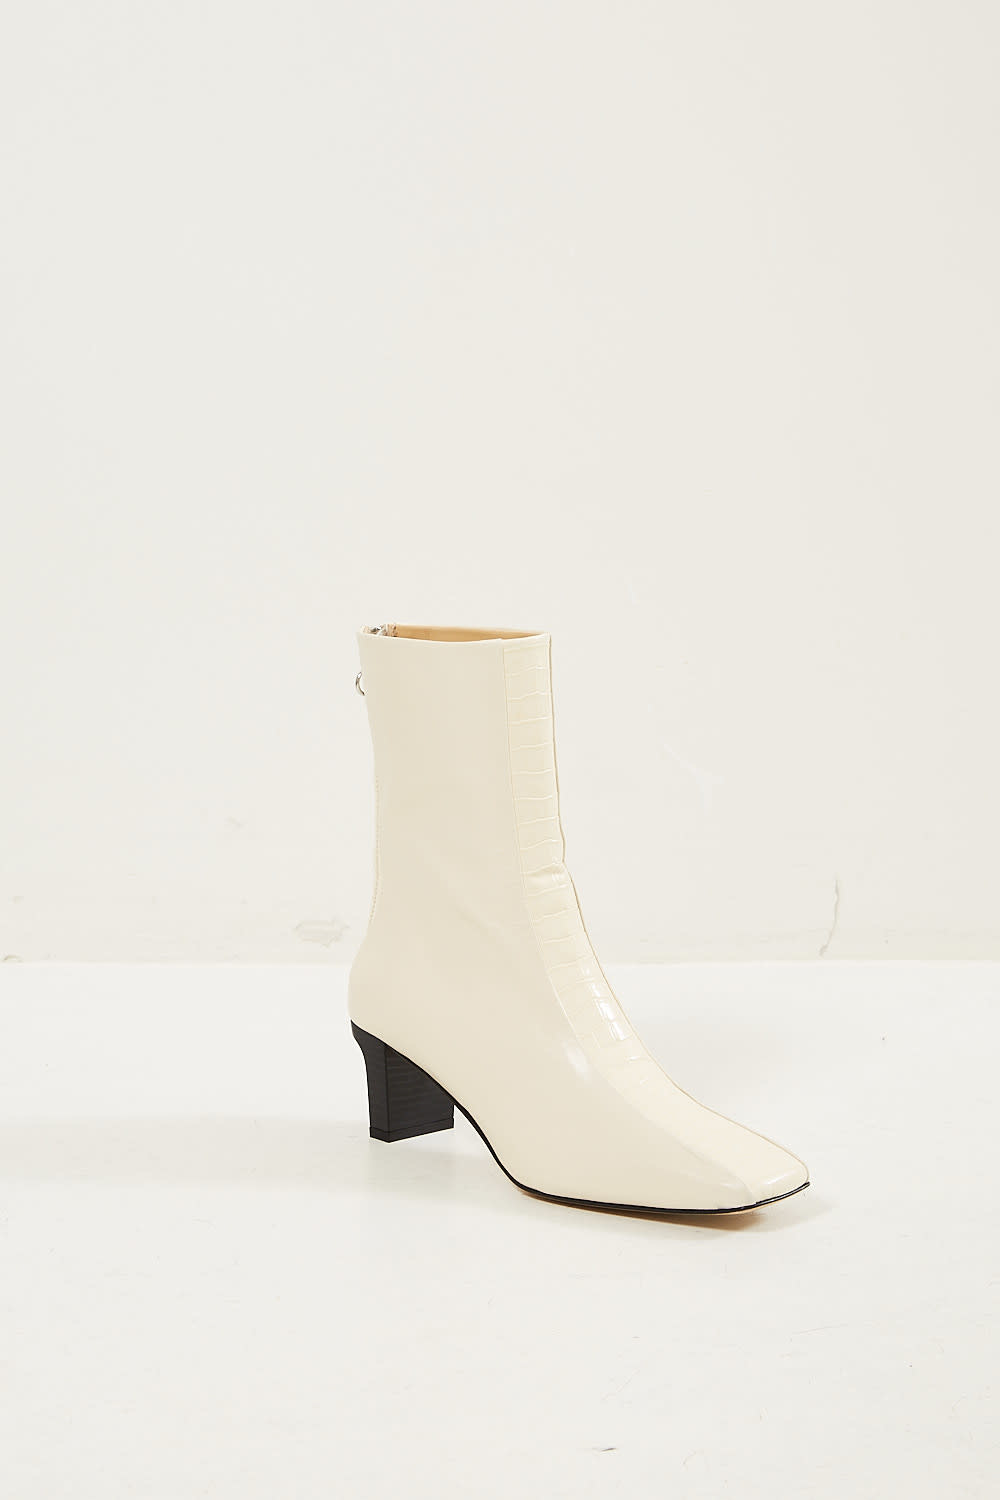 Aeyde Molly nappa leather boots